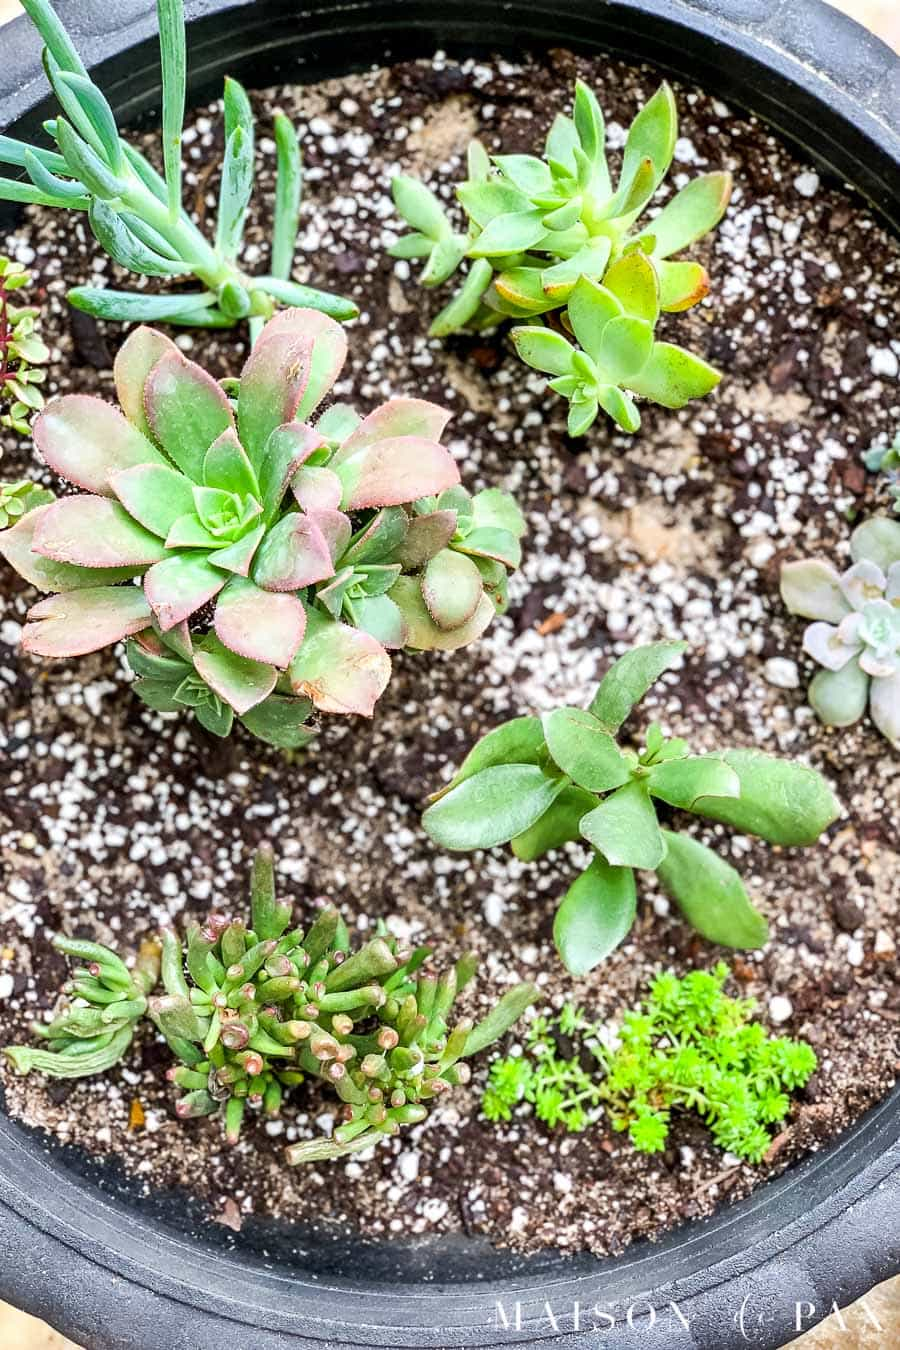 Pot of mixed succulents | Maison de Pax